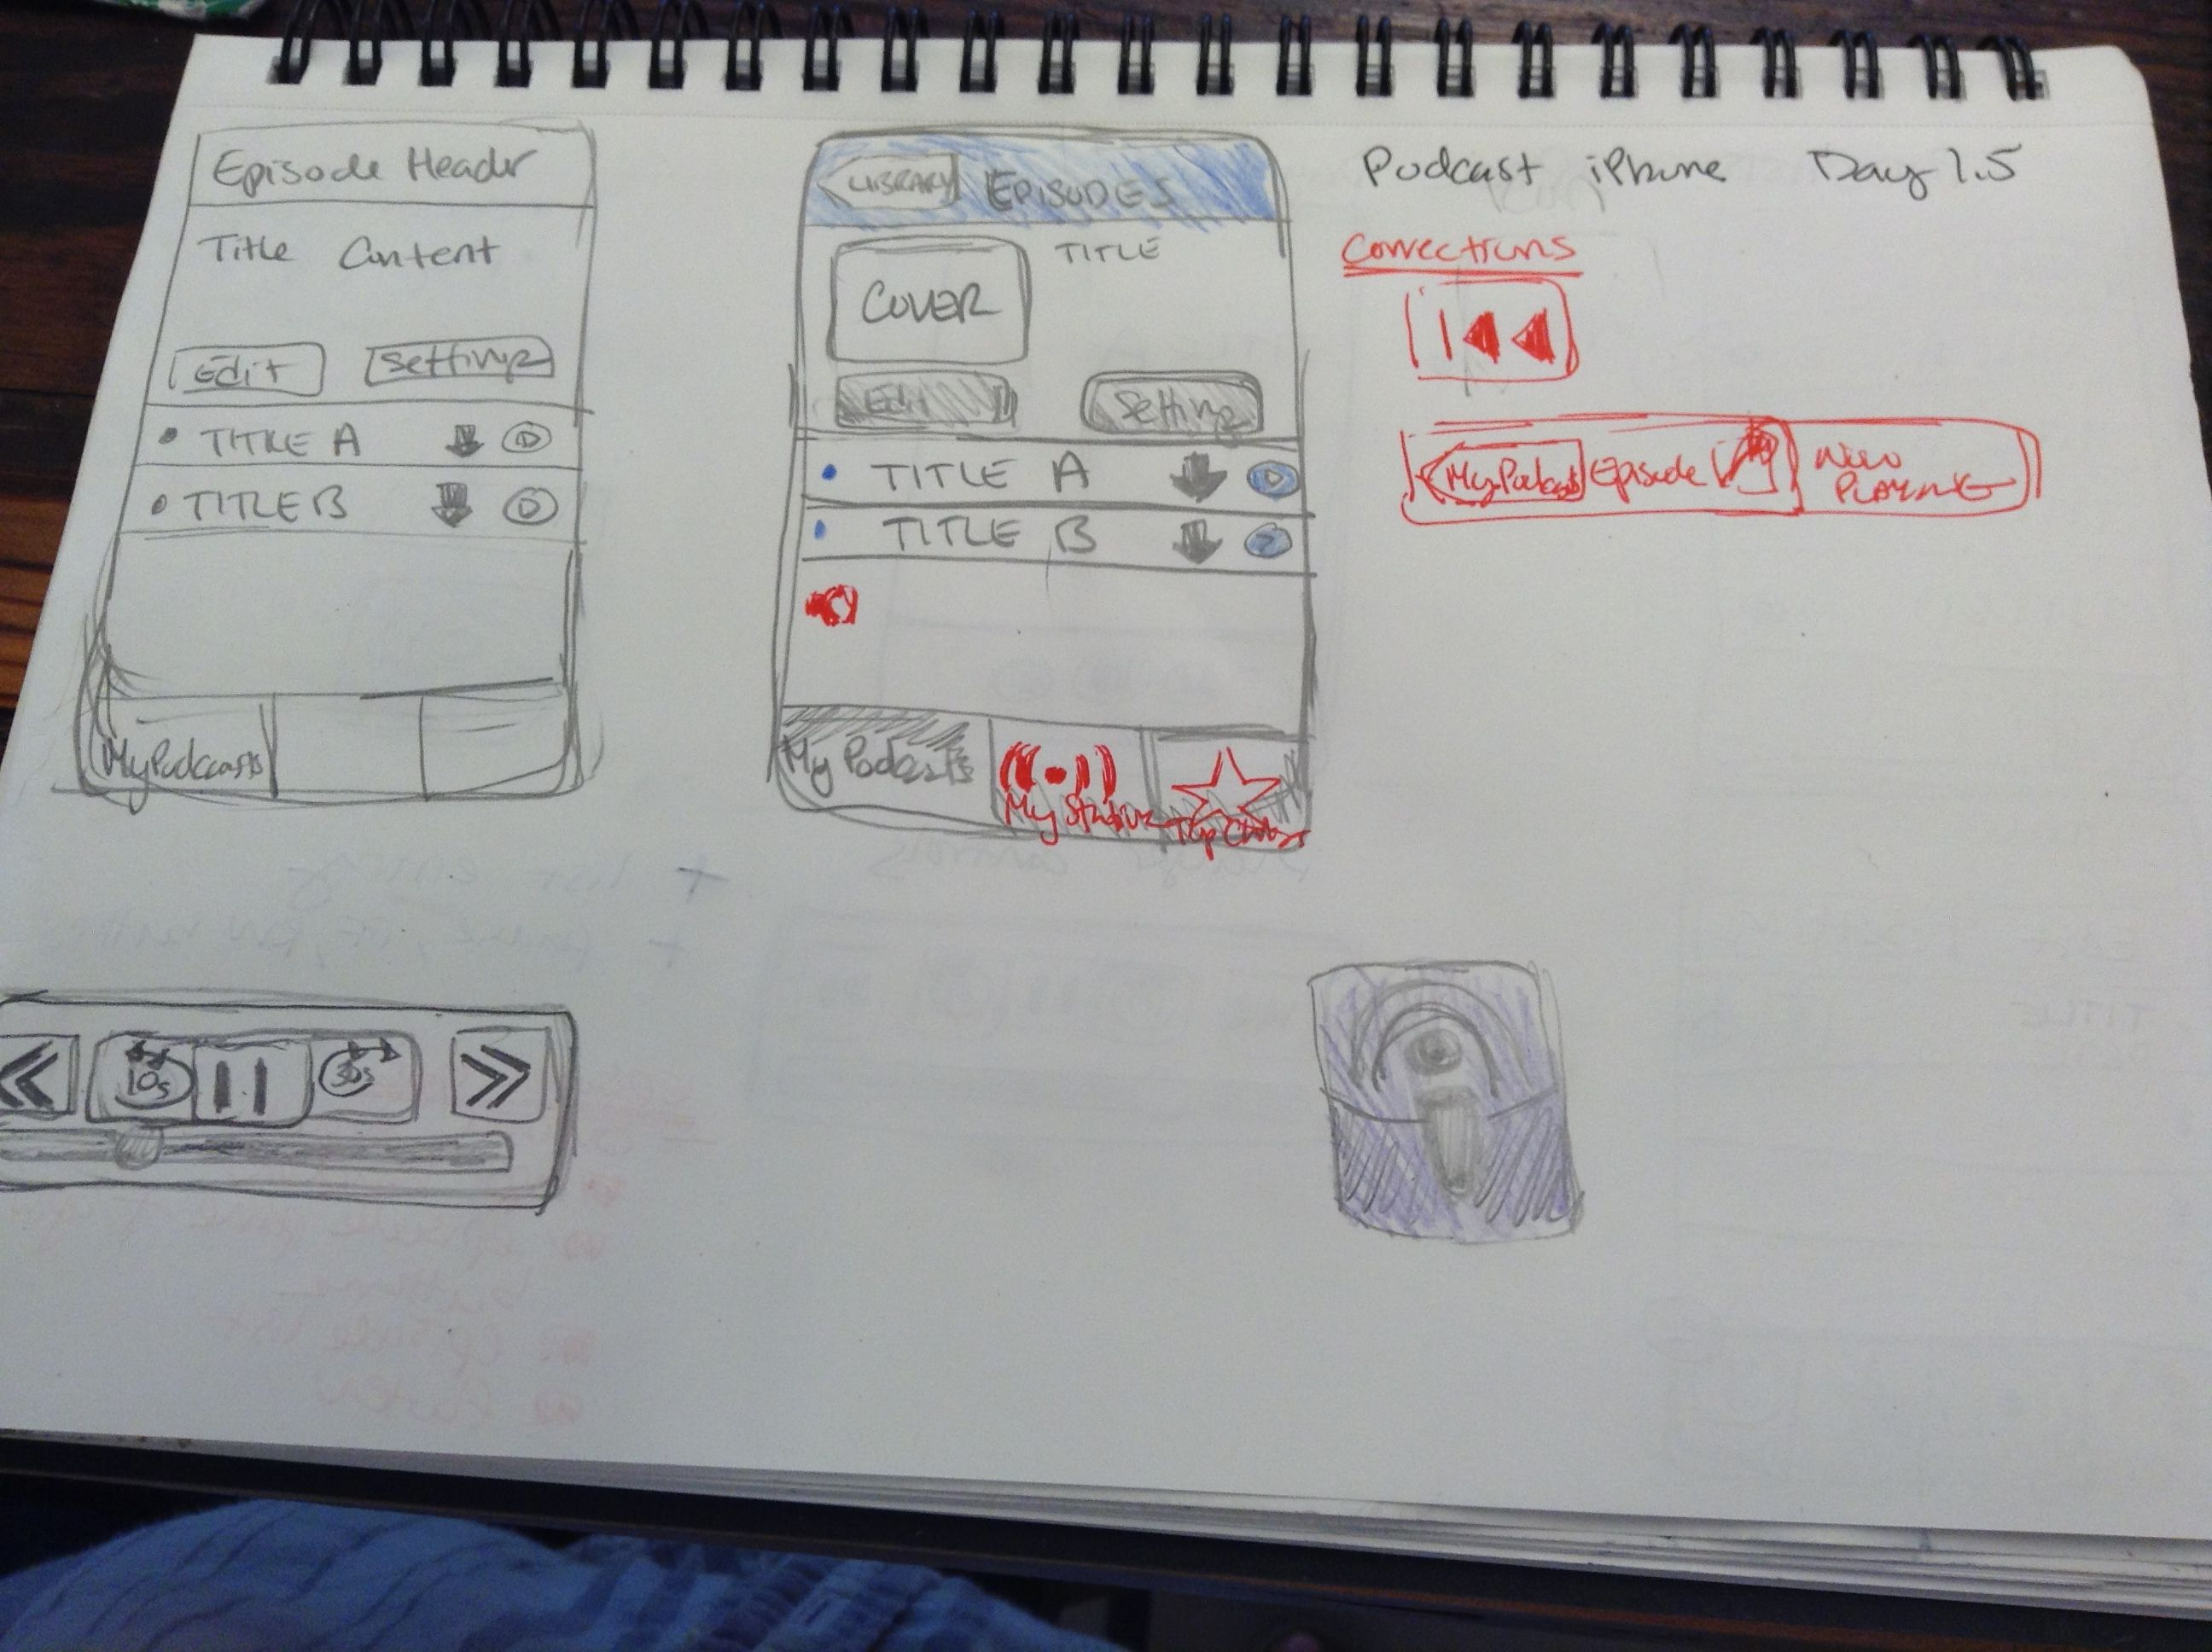 Sketching iPhone Podcast App by memory day 1.5 Sketches